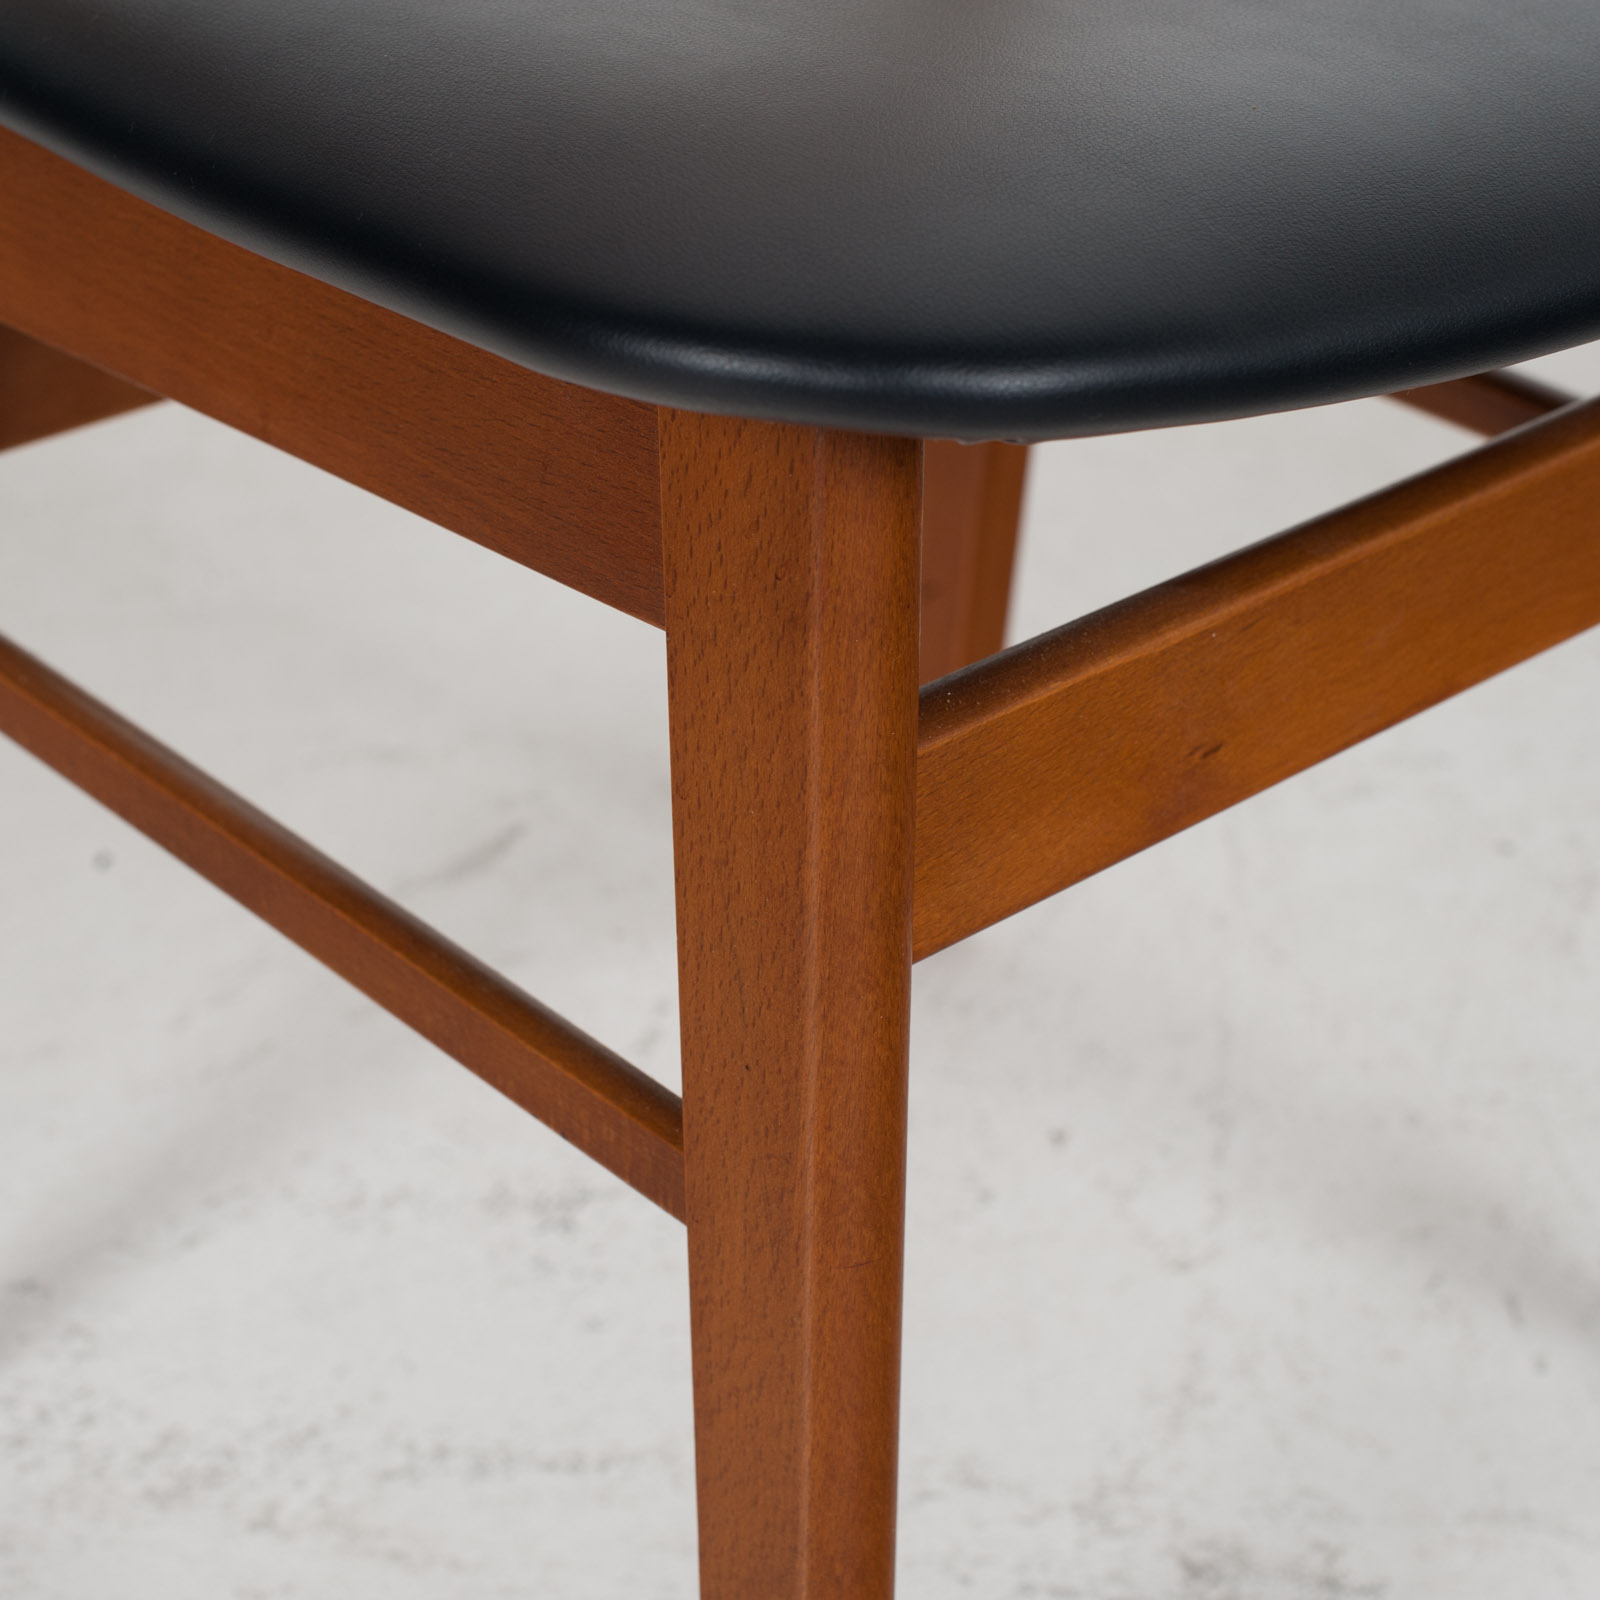 V Back Dining Chairs By Farstrup With Buttons In Teak And New Vinyl Upholstery 1960s Denmark 03